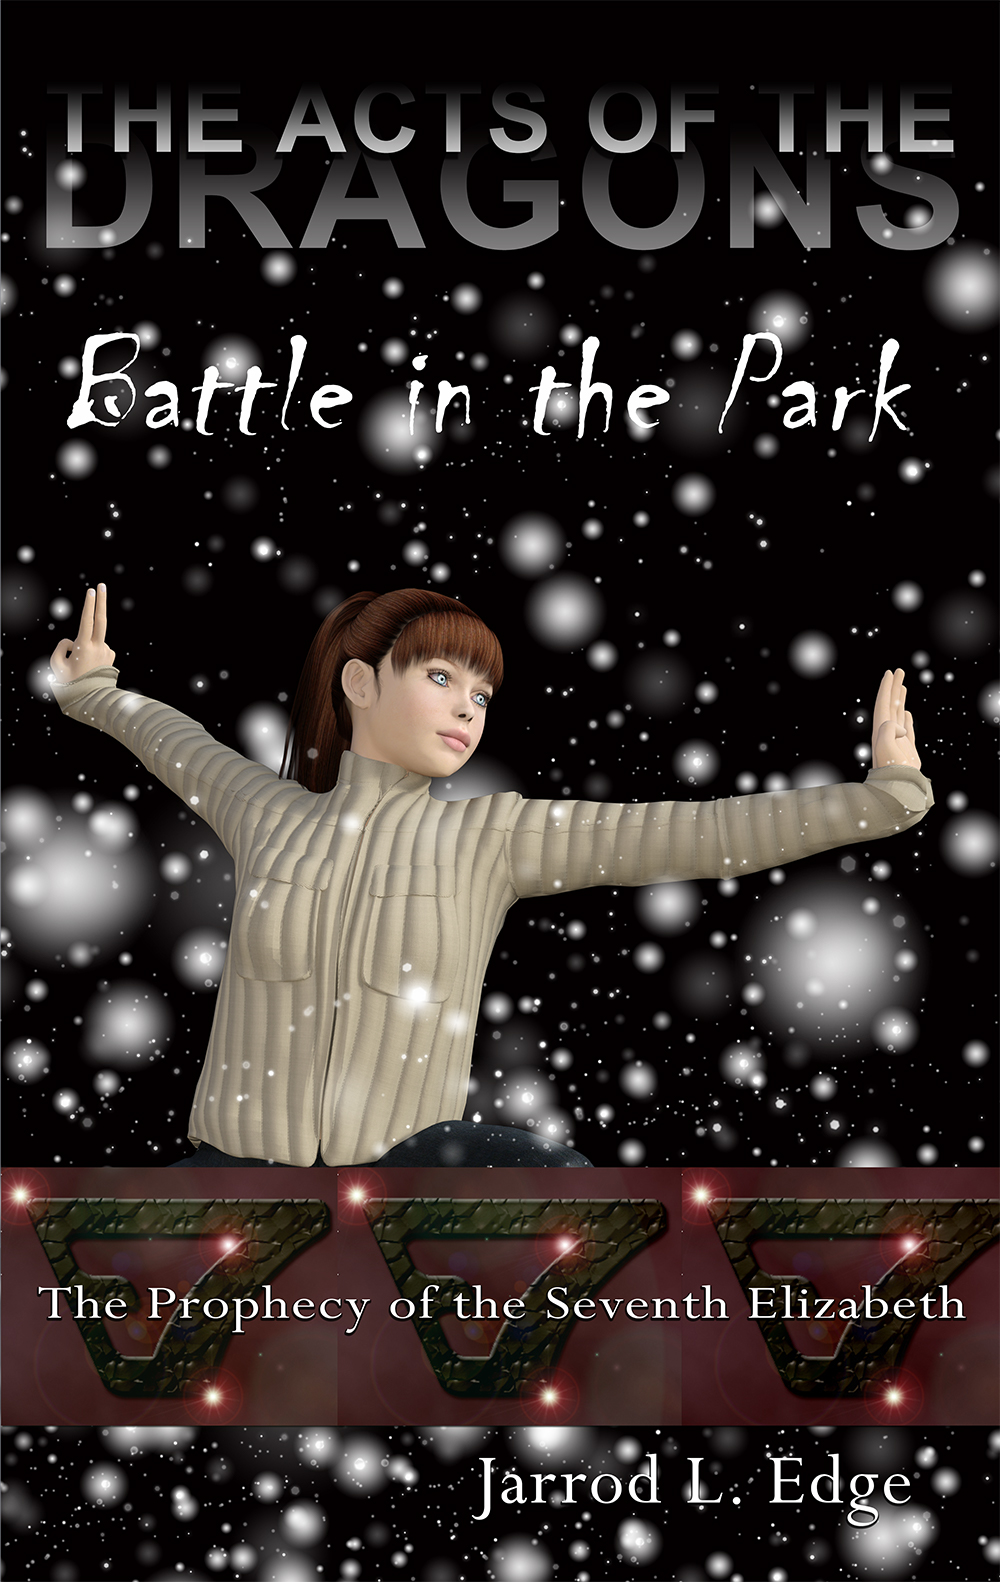 BattleInThePark-cover-1000